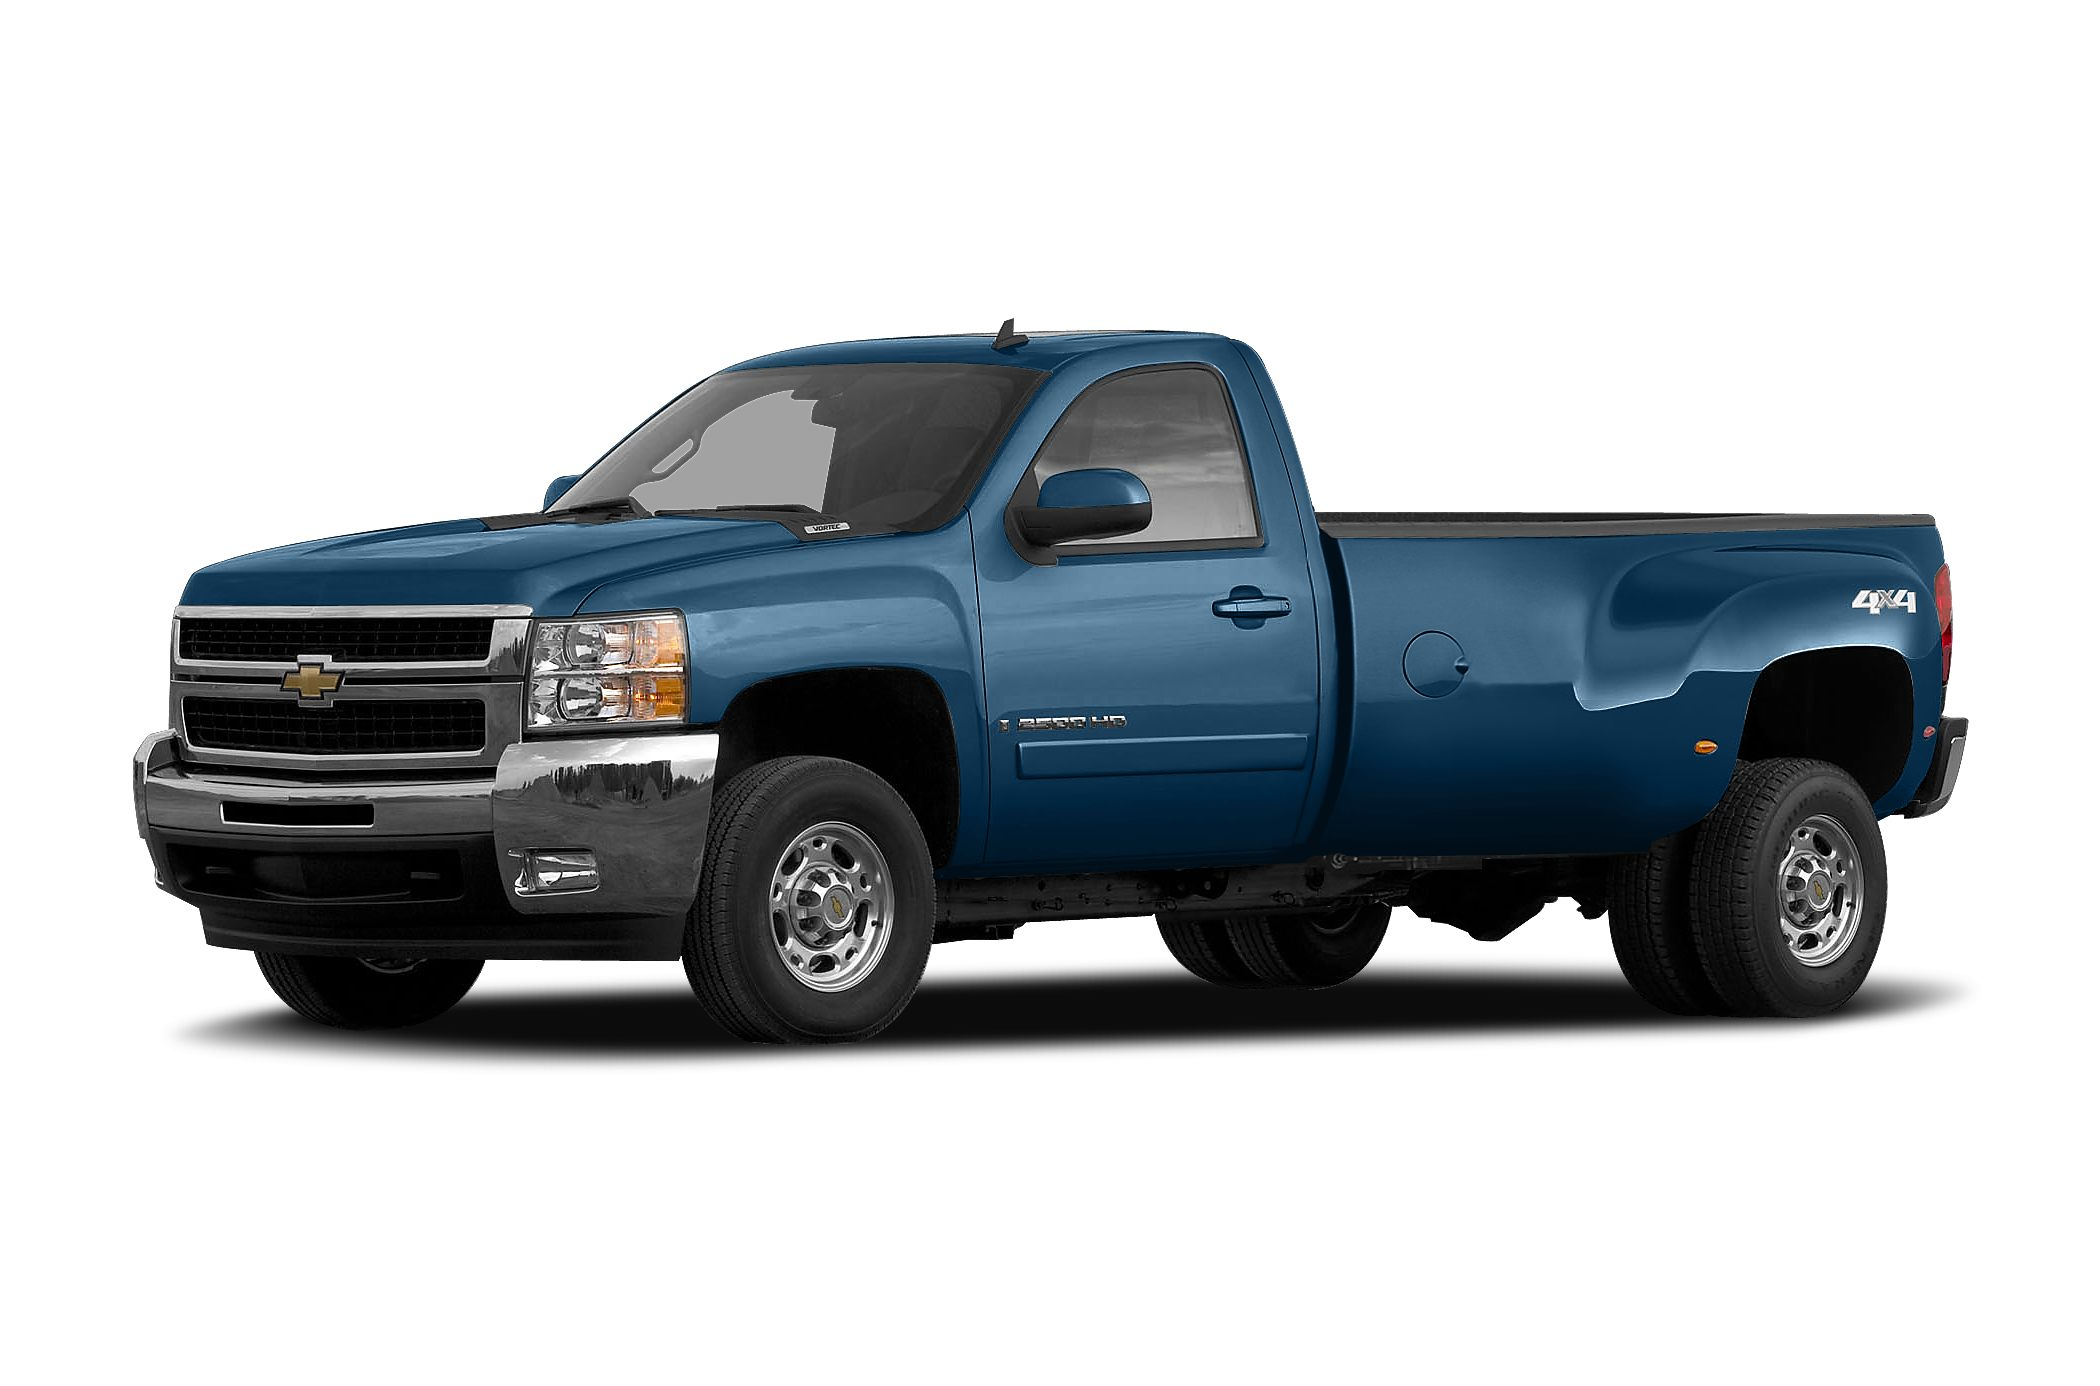 2008 Chevrolet Silverado 3500 LT Crew Cab Pickup for sale in New Braunfels for $26,988 with 126,850 miles